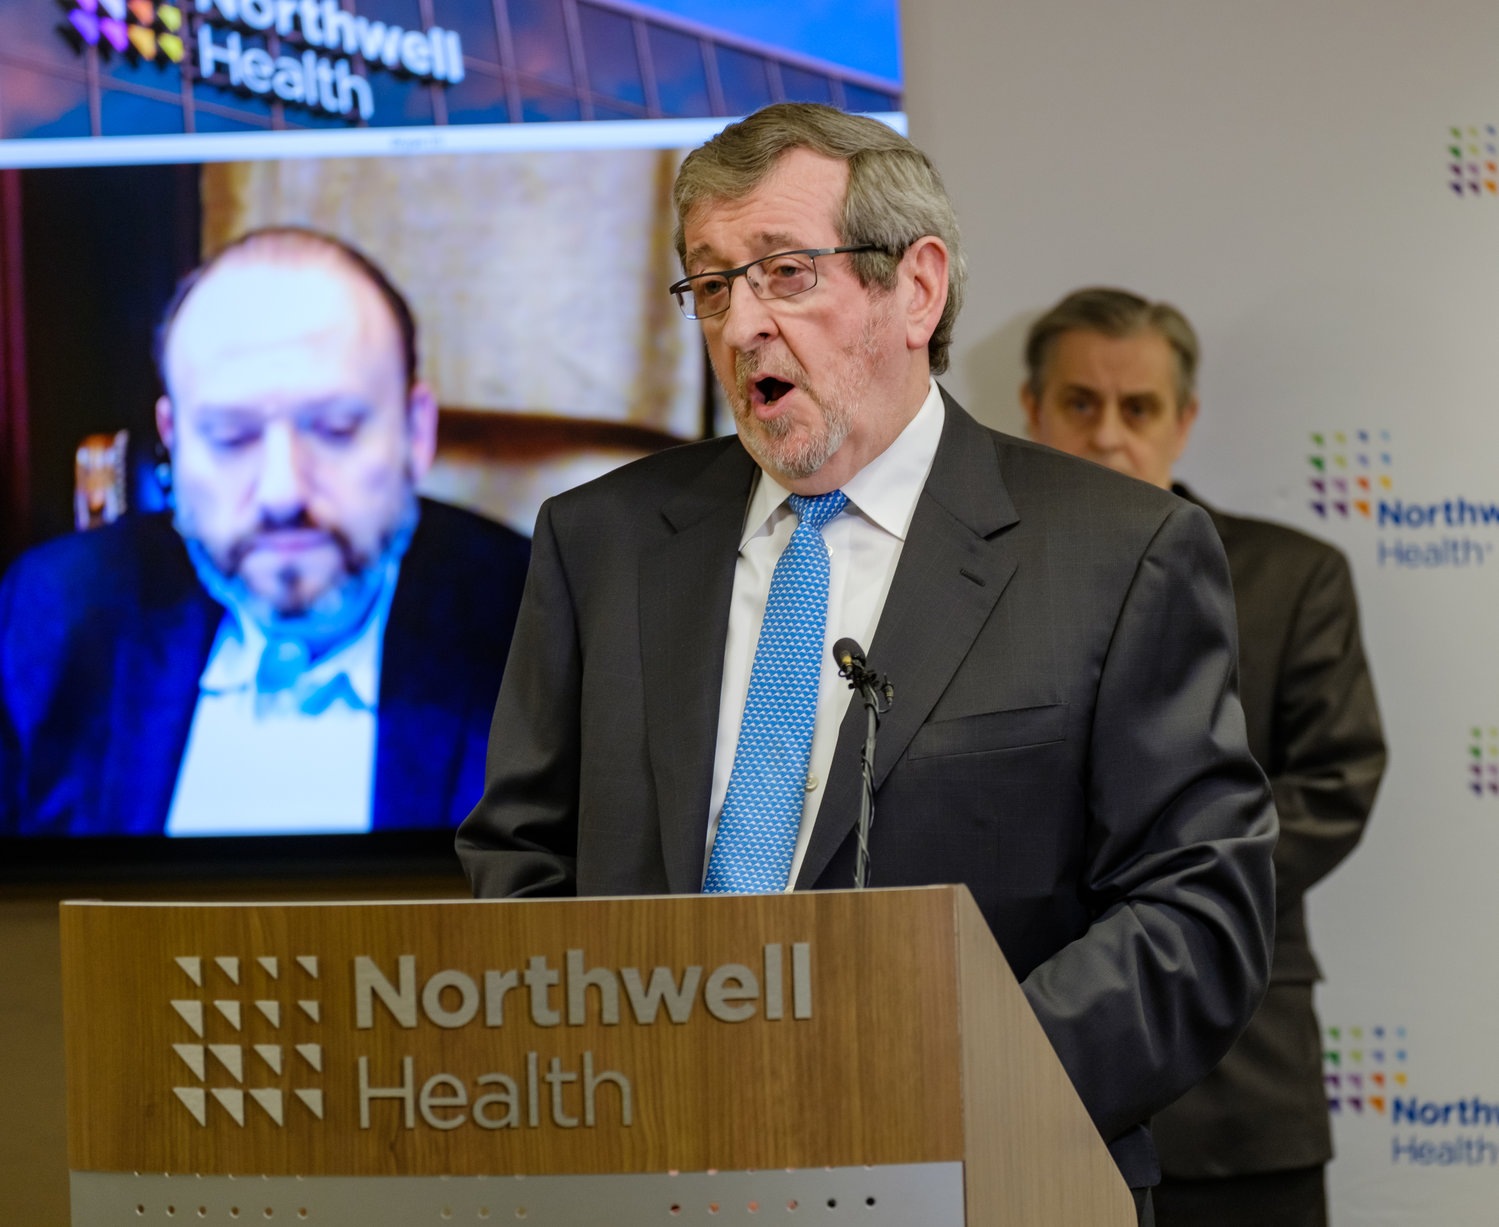 Michael Dowling president and CEO of Northwell Health, announced Friday morning that the Feinstein Institutes was undertaking clinical treatment trials for COVID-19 with hospitalized patients experiencing moderate to severe symptoms of the illness.